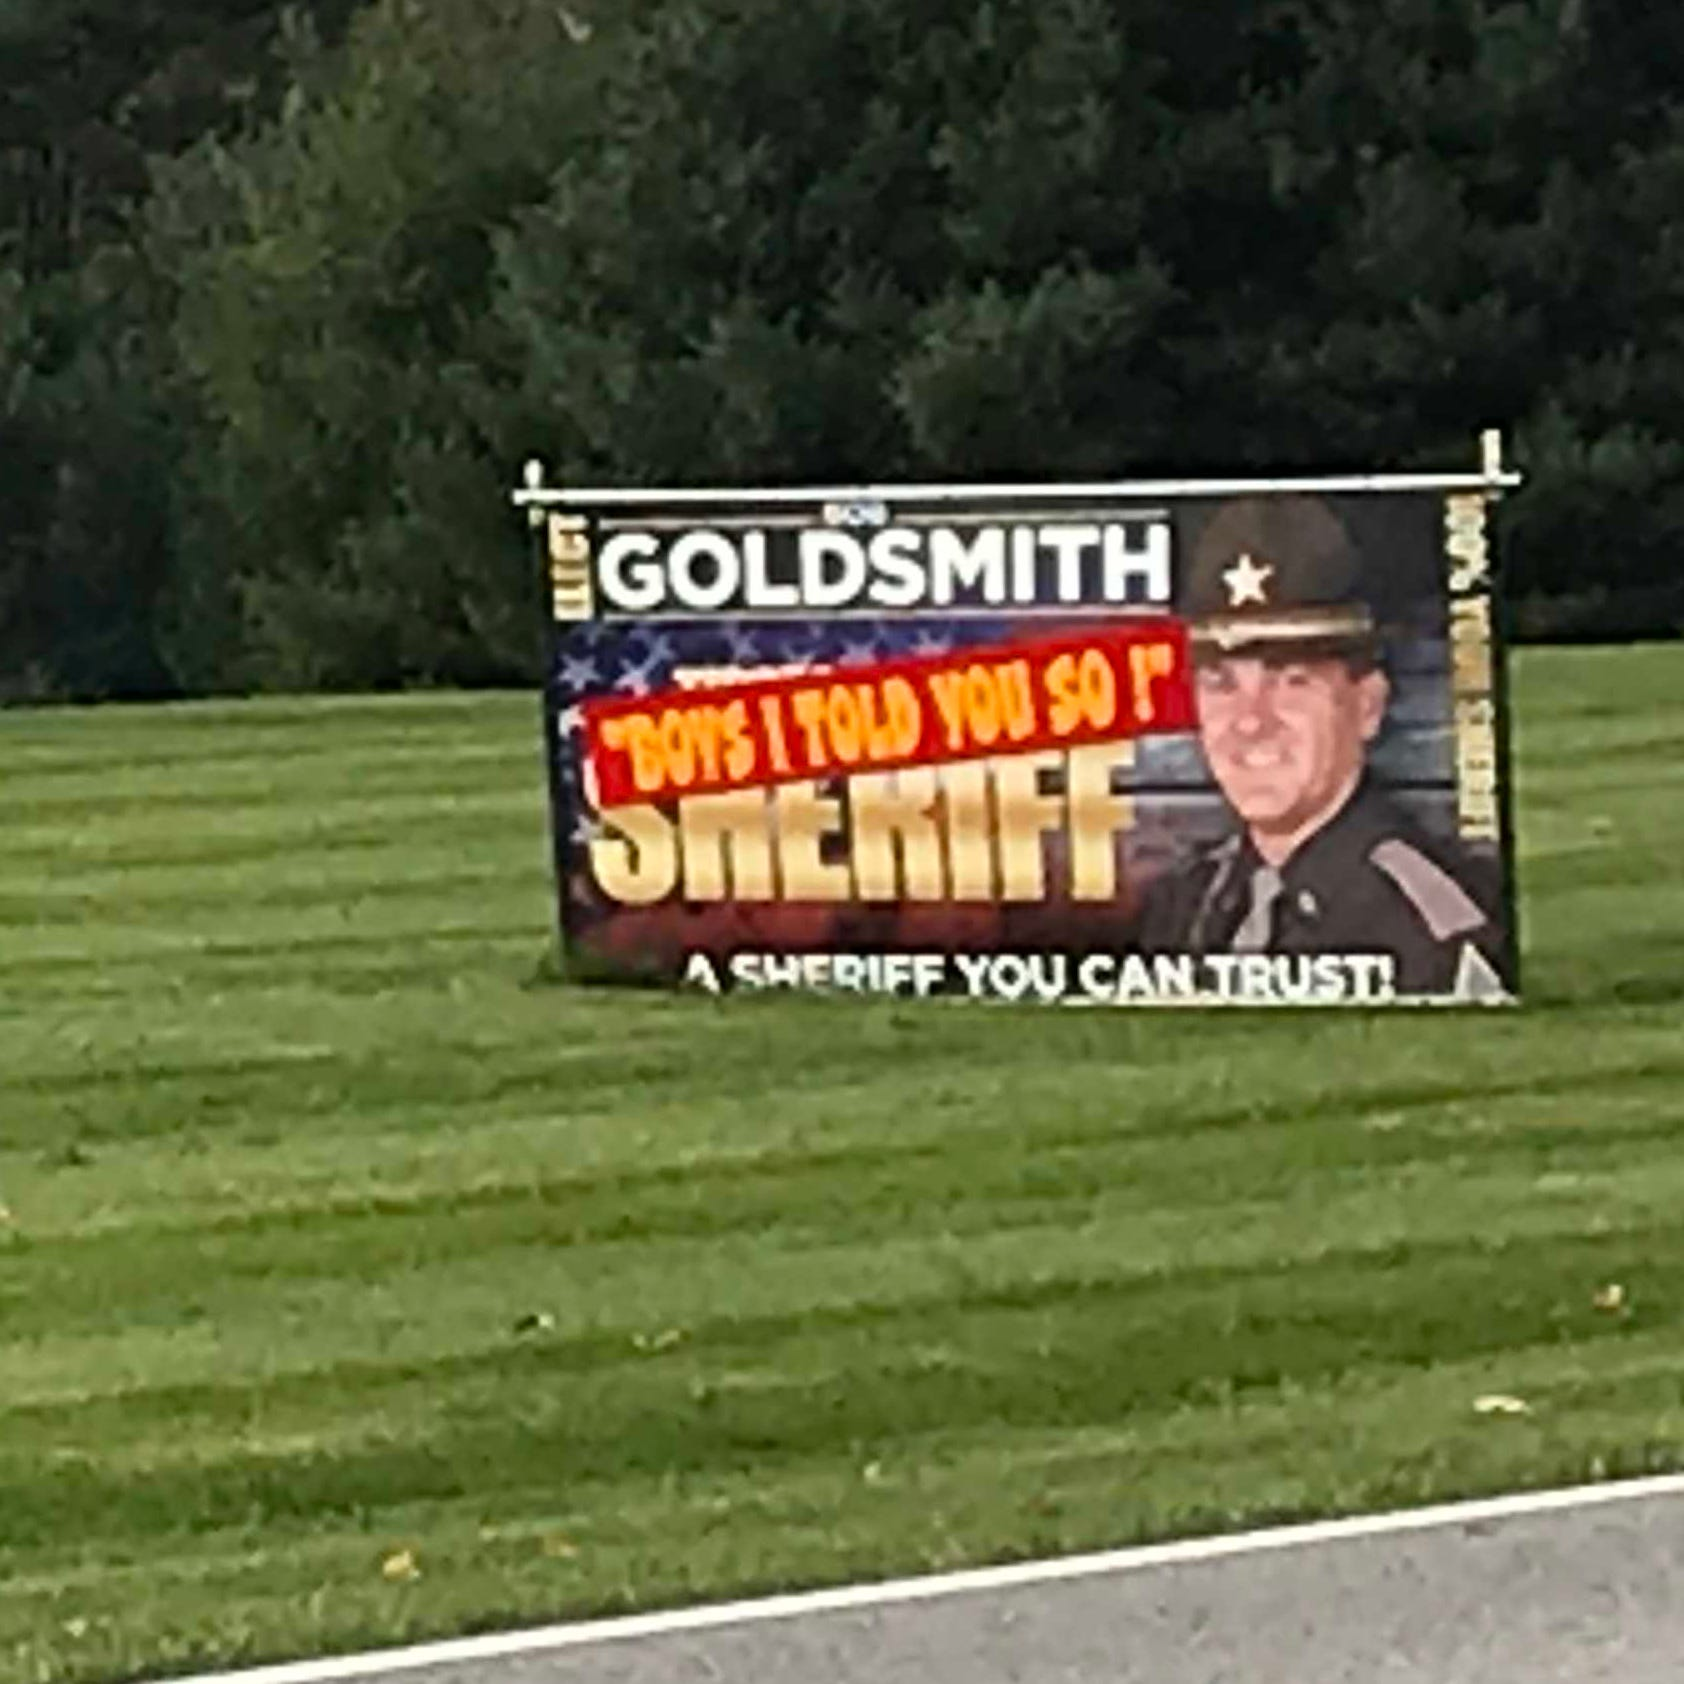 New Tippecanoe County sheriff races to take down 'gloating' campaign sign